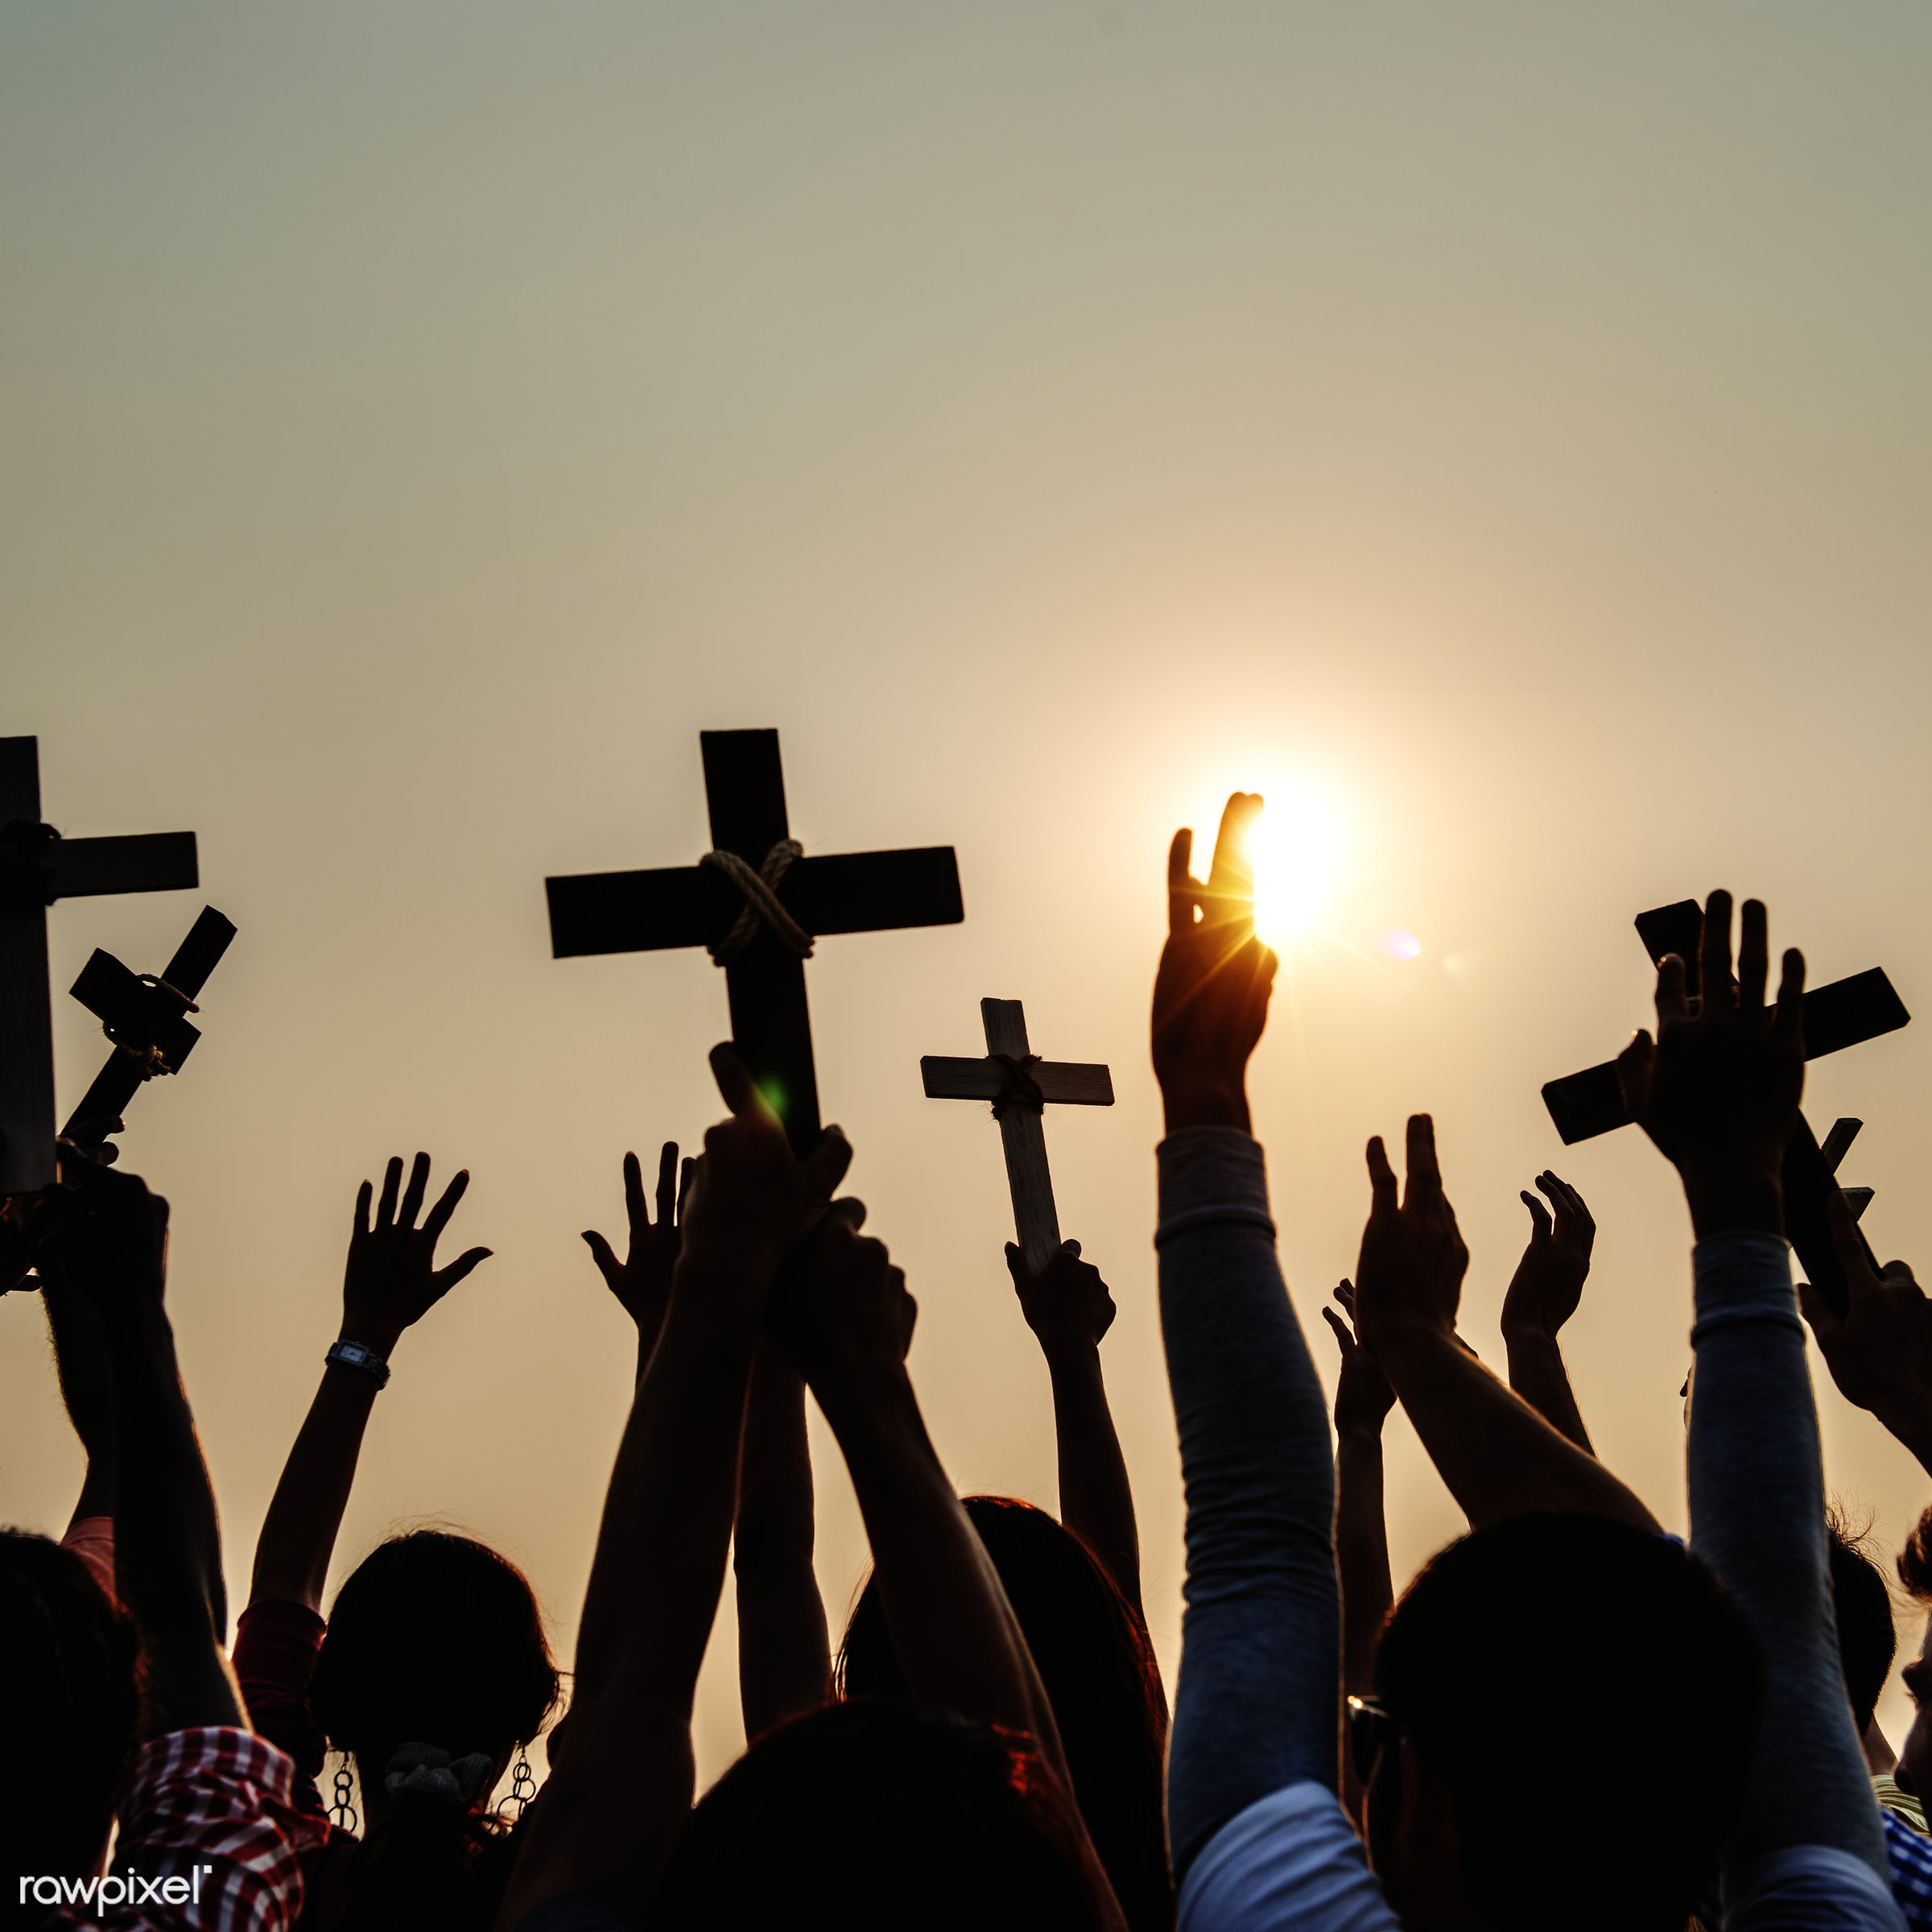 Christians holding up crosses - arms raised, back lit, belief, carefree, catholic, celebration, cheerful, christian,...